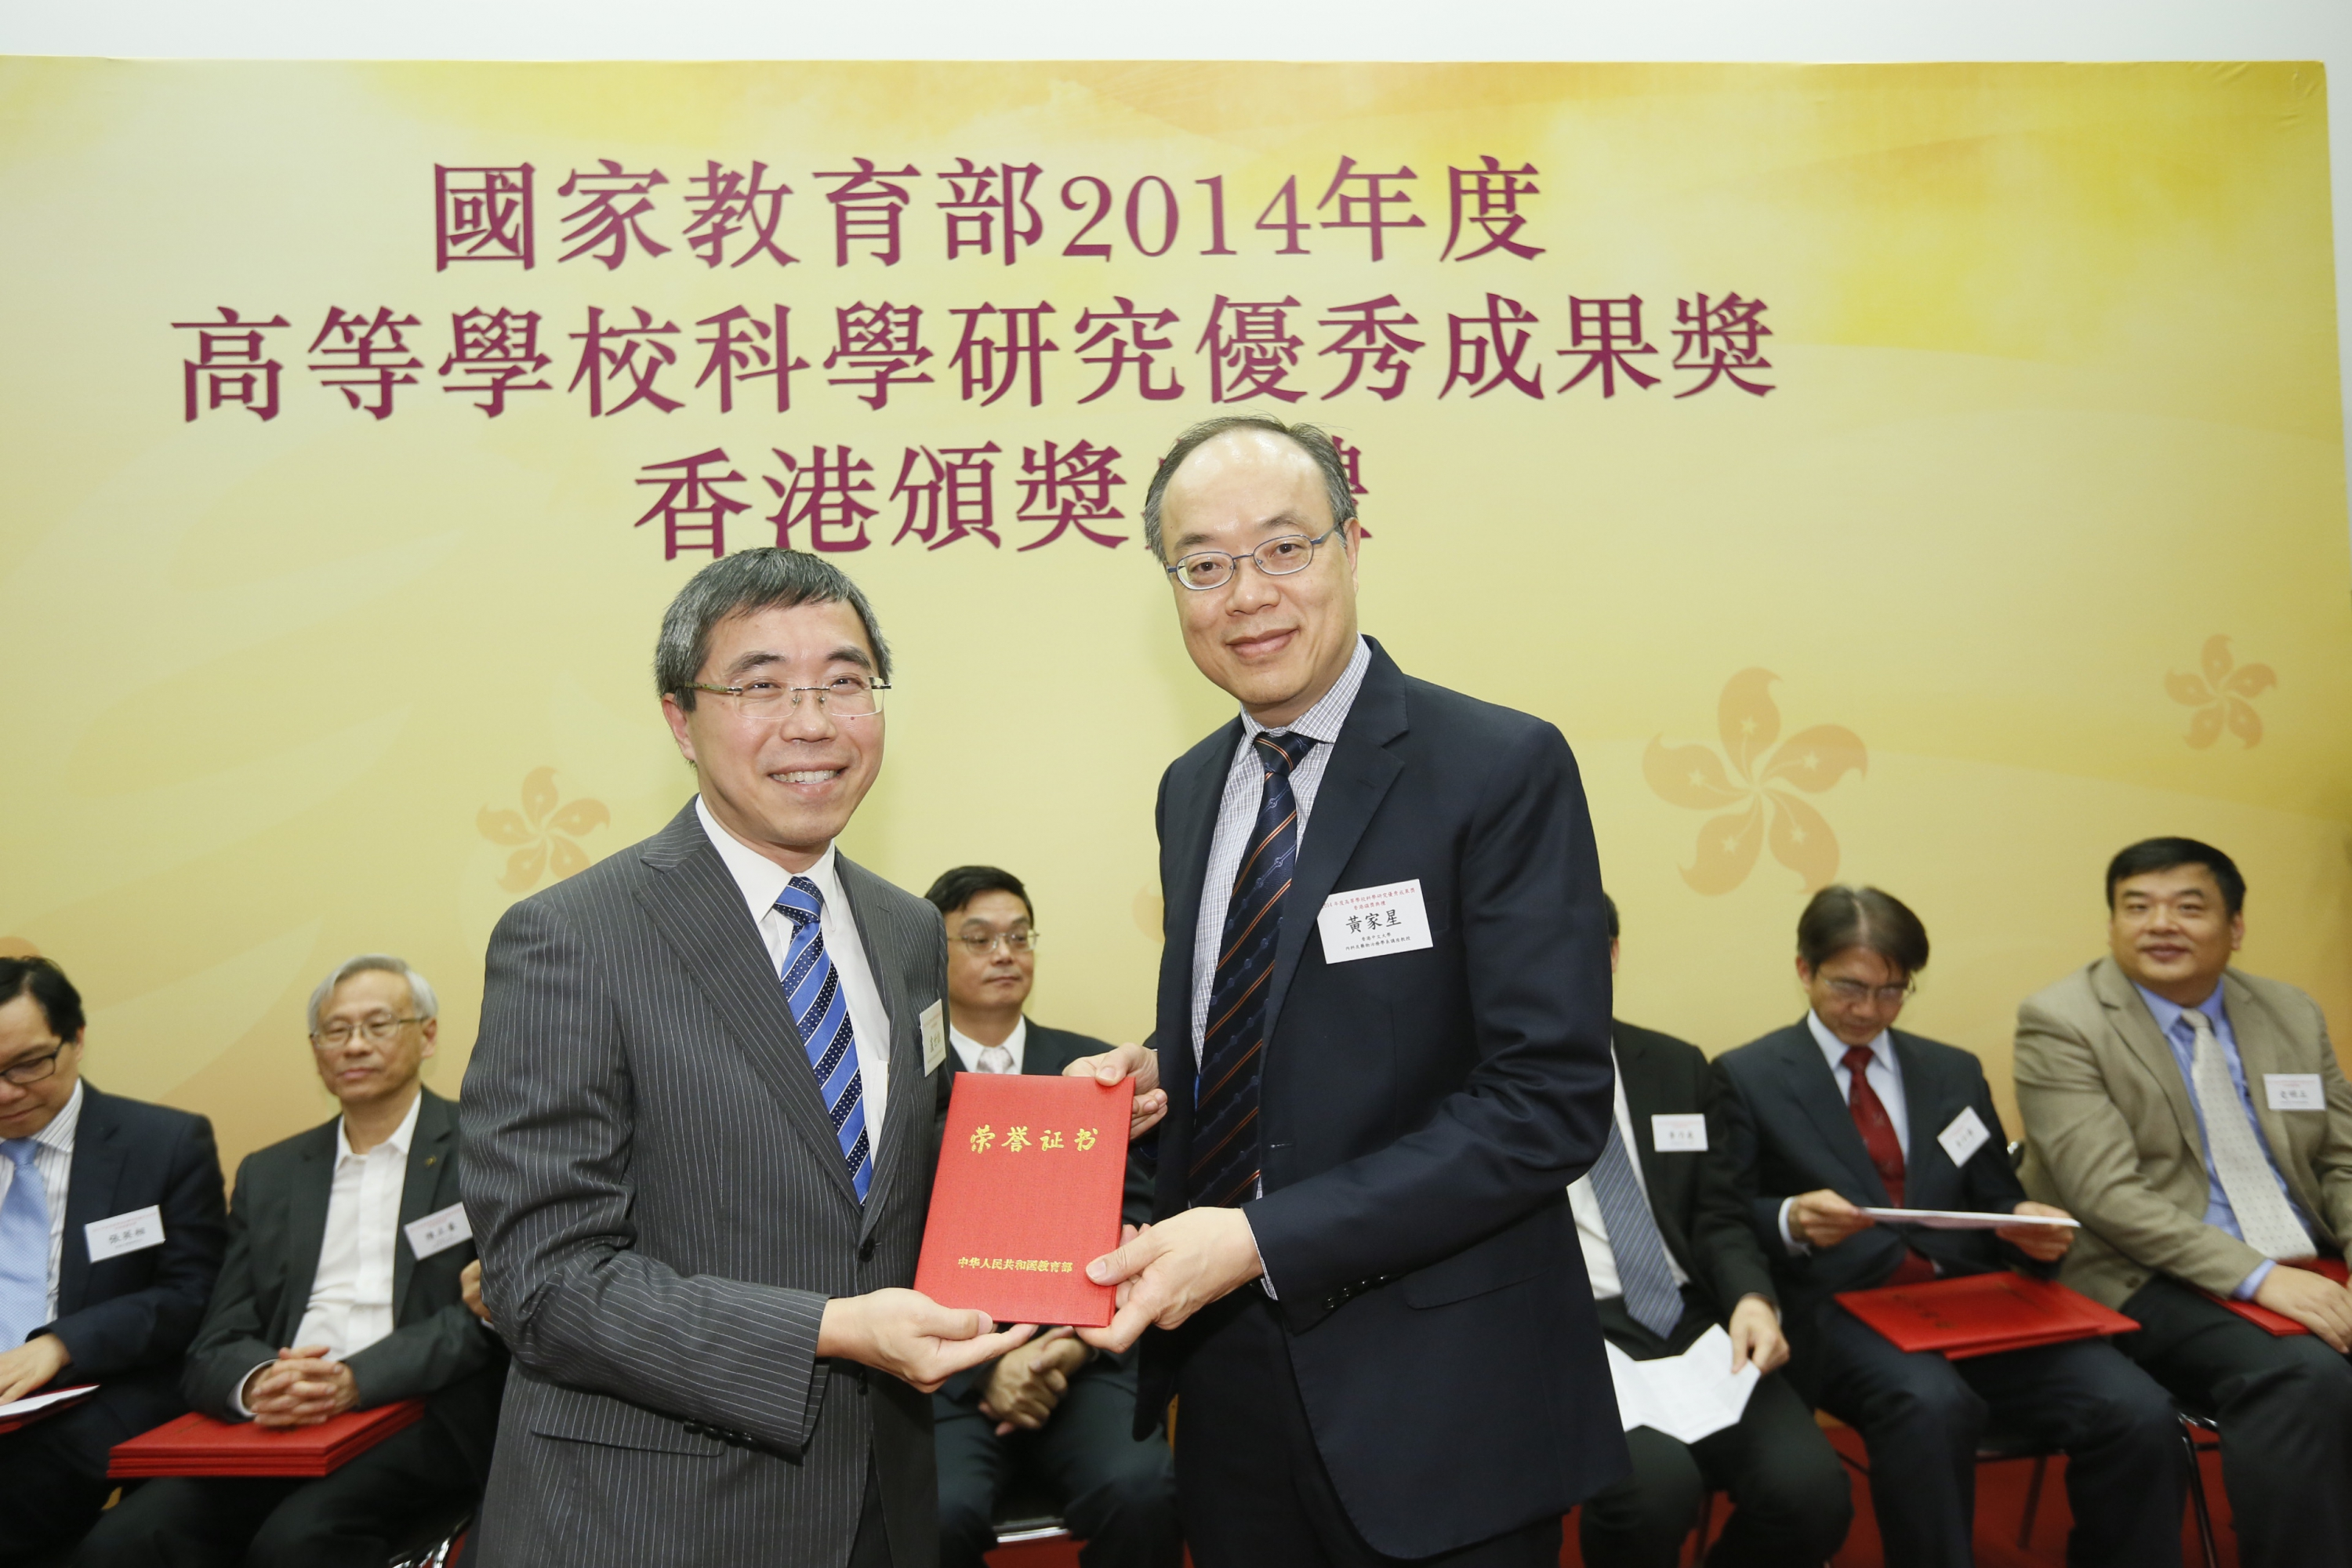 Prof. Lawrence Wong (right) receives his award certificate from Mr. Brian Lo.